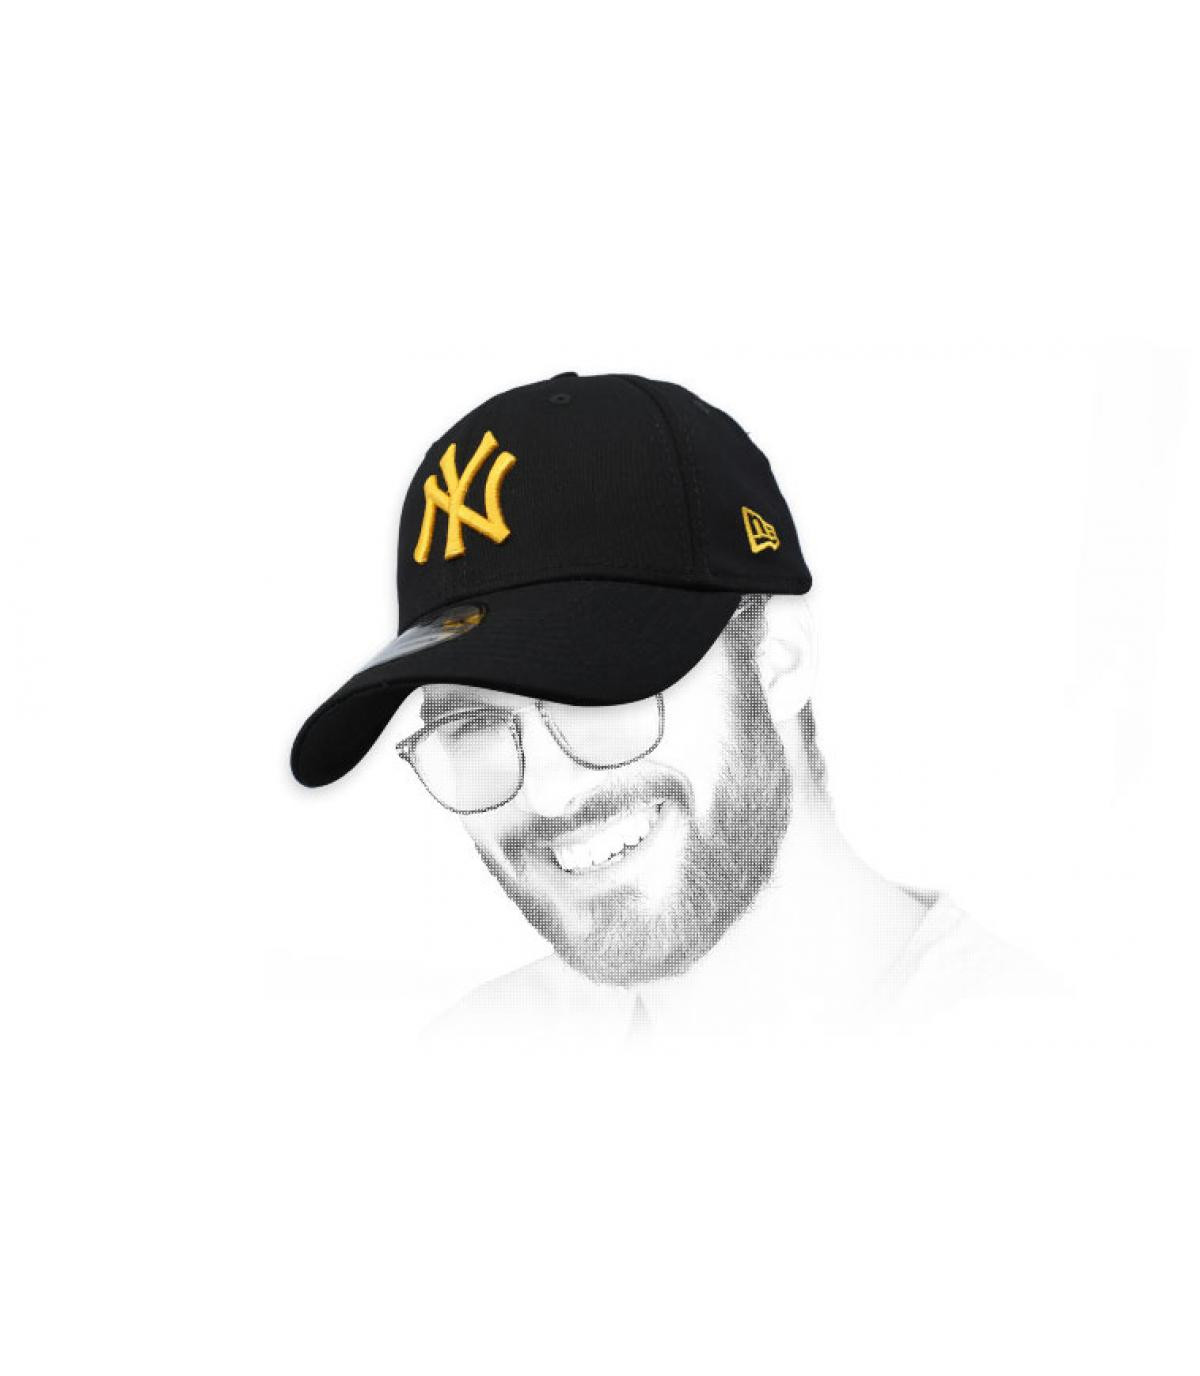 casquette NY schwarz Gold